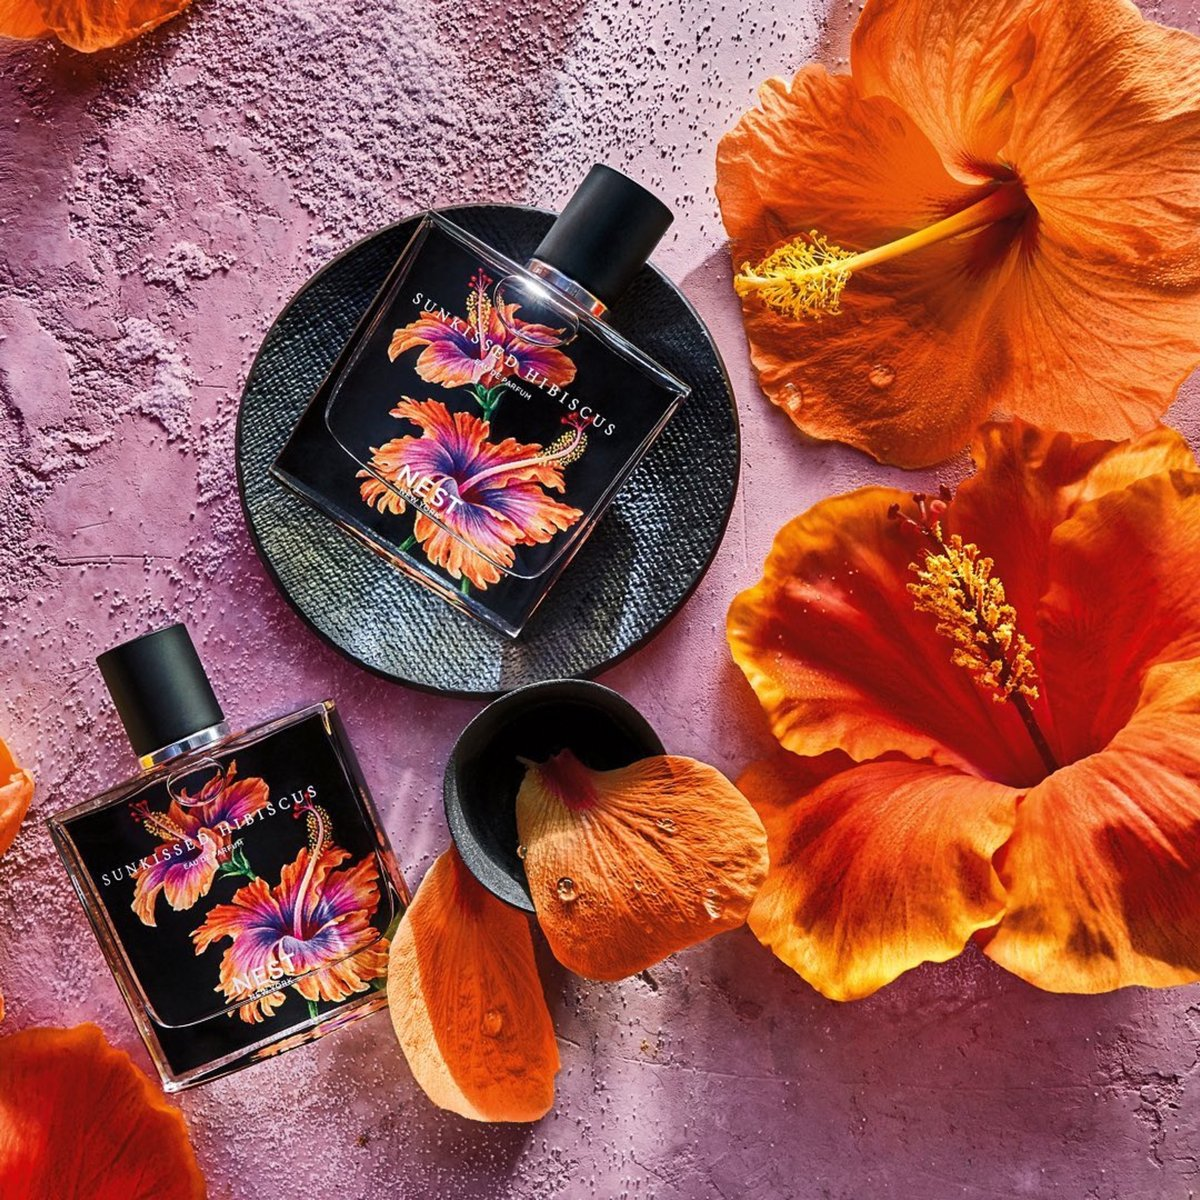 Meet our Perfume of the month, Sunkissed Hibiscus by @Nestfragrances 🌸 Wrap yourself in the notes of tropical frangipani flower and orange blossom. Add this fruit & floral scent to your queue this month. #Scentbird  https://t.co/RnxiWBld0m